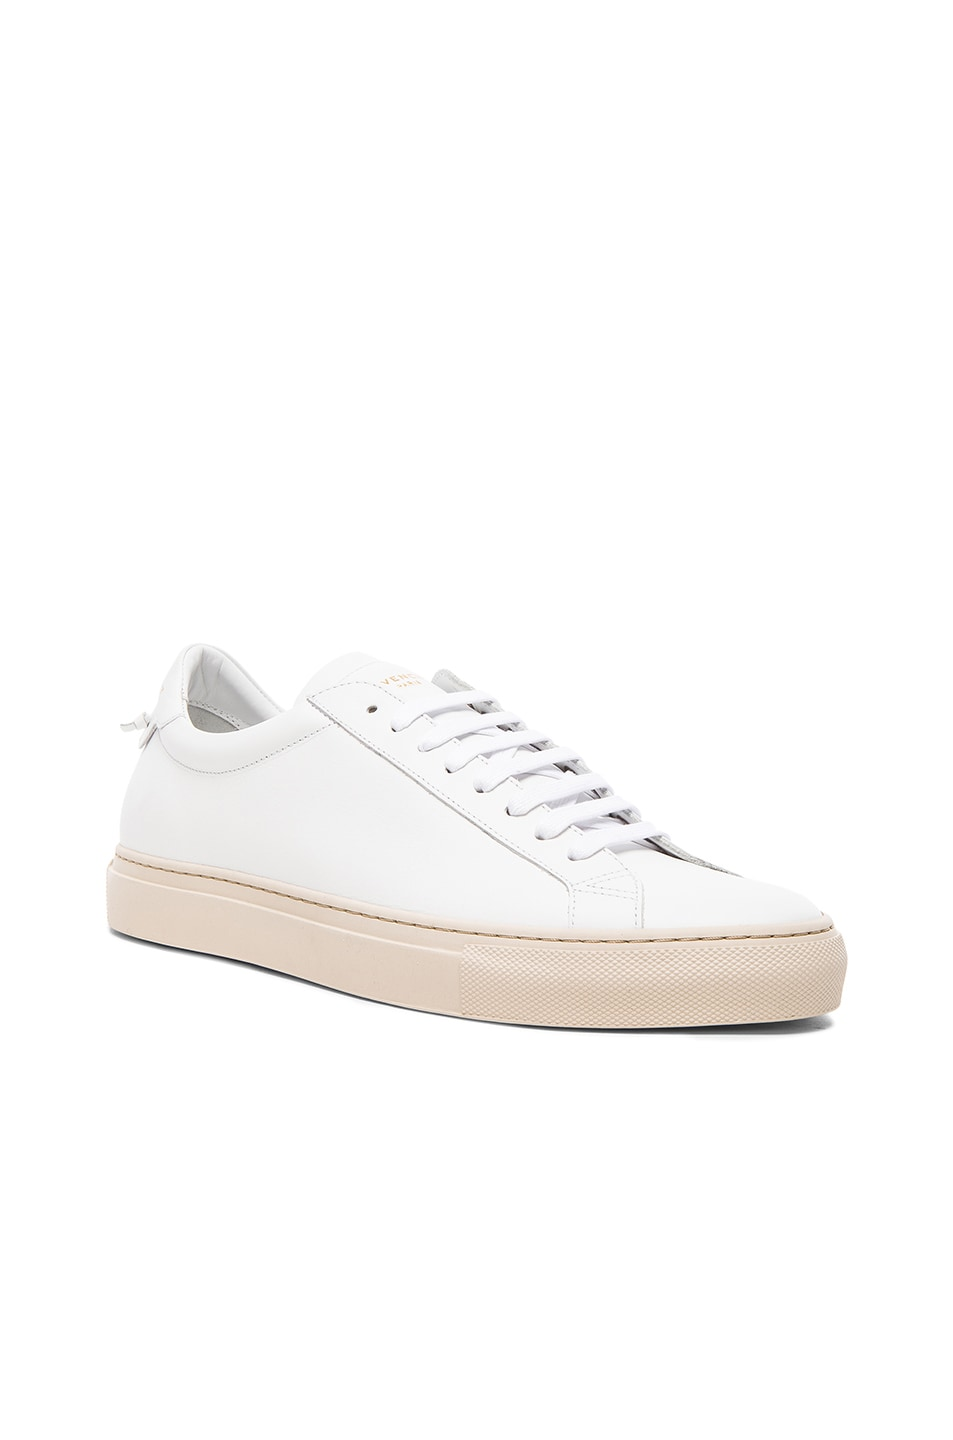 Givenchy Logo Baskets Bas-top - Blanc ed5MC